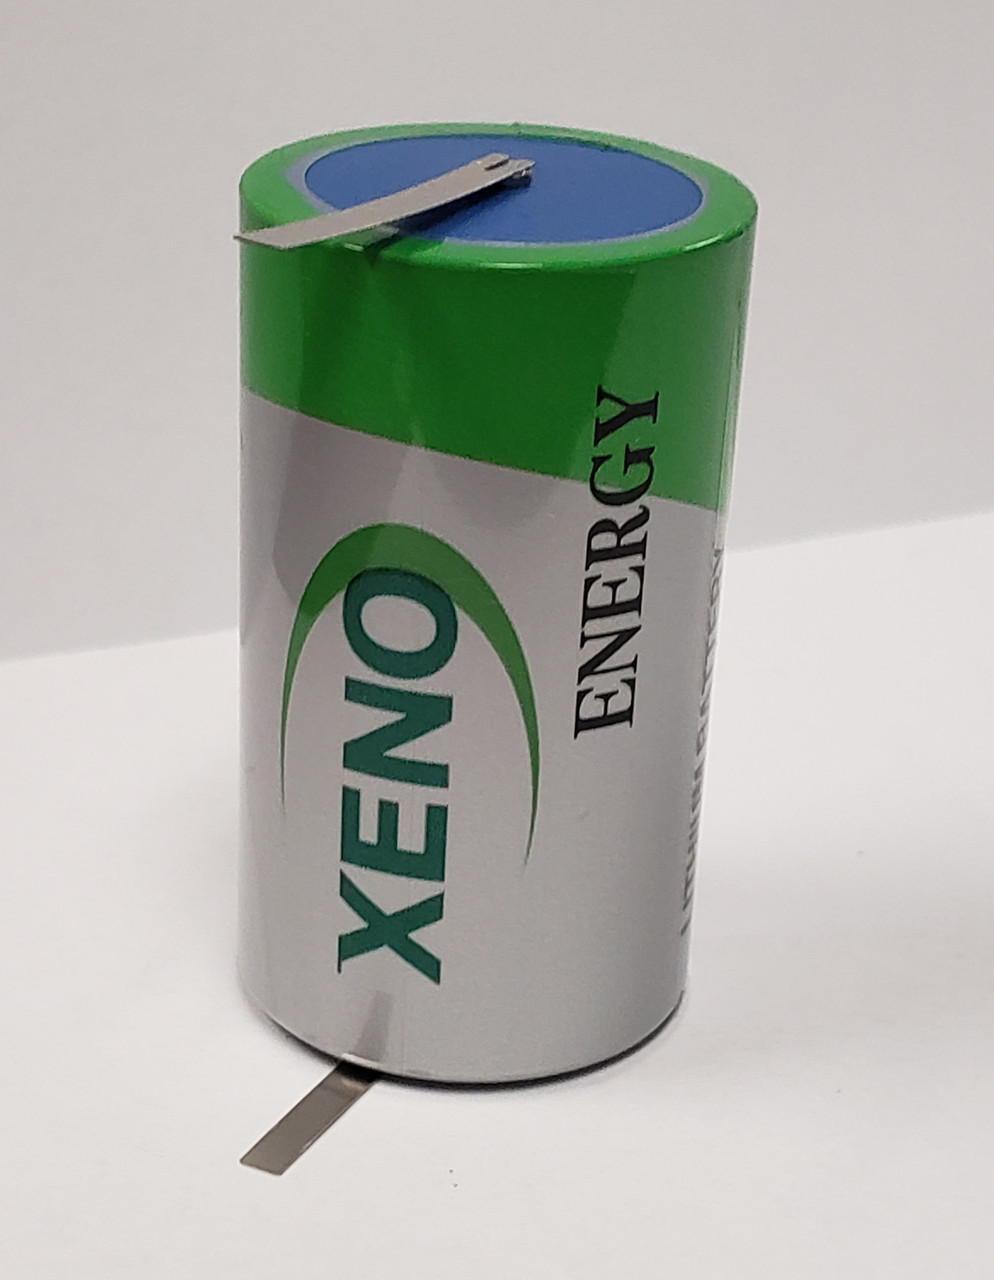 Xeno XL-205F-T1 with Tabs Size D 3 6V 19 0Ah Lithium Battery